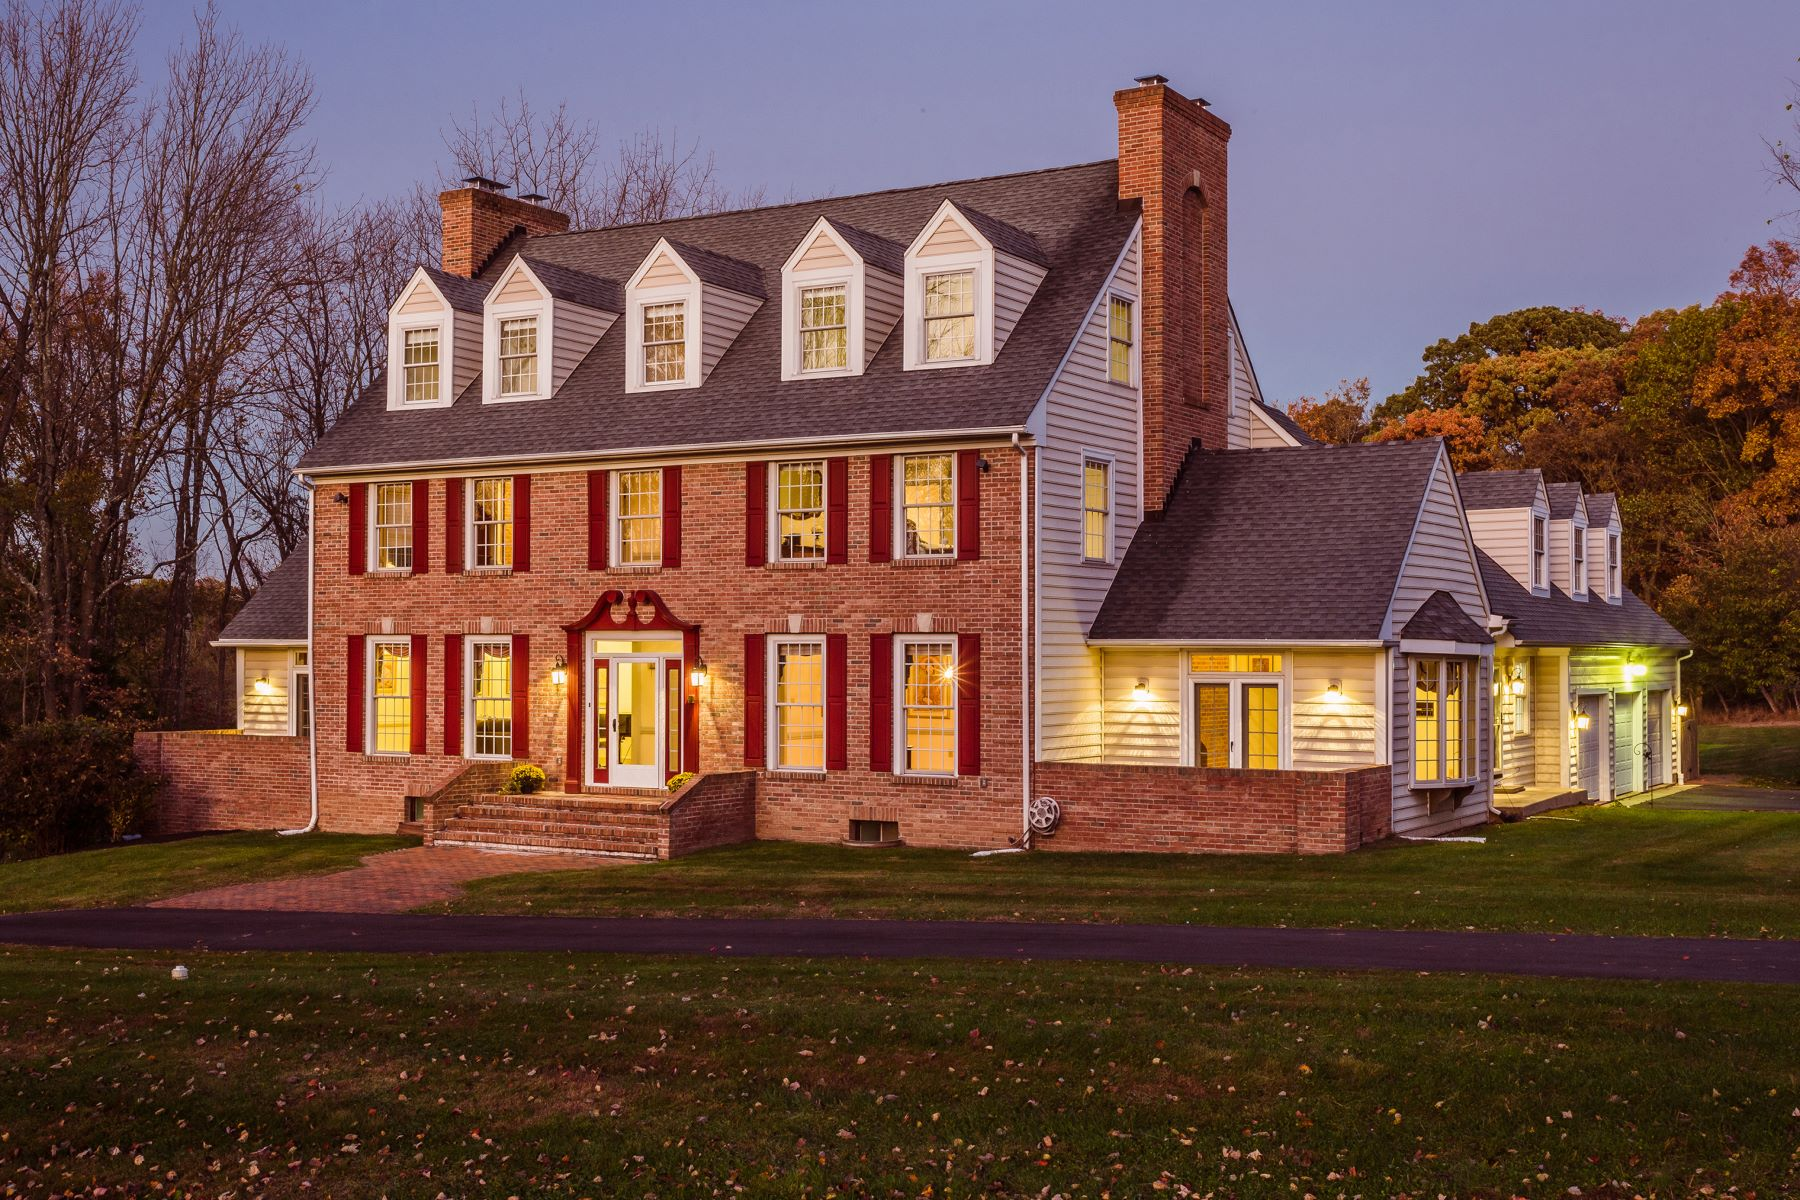 Single Family Homes for Sale at 978 CREAMERY RD Newtown, Pennsylvania 18940 United States